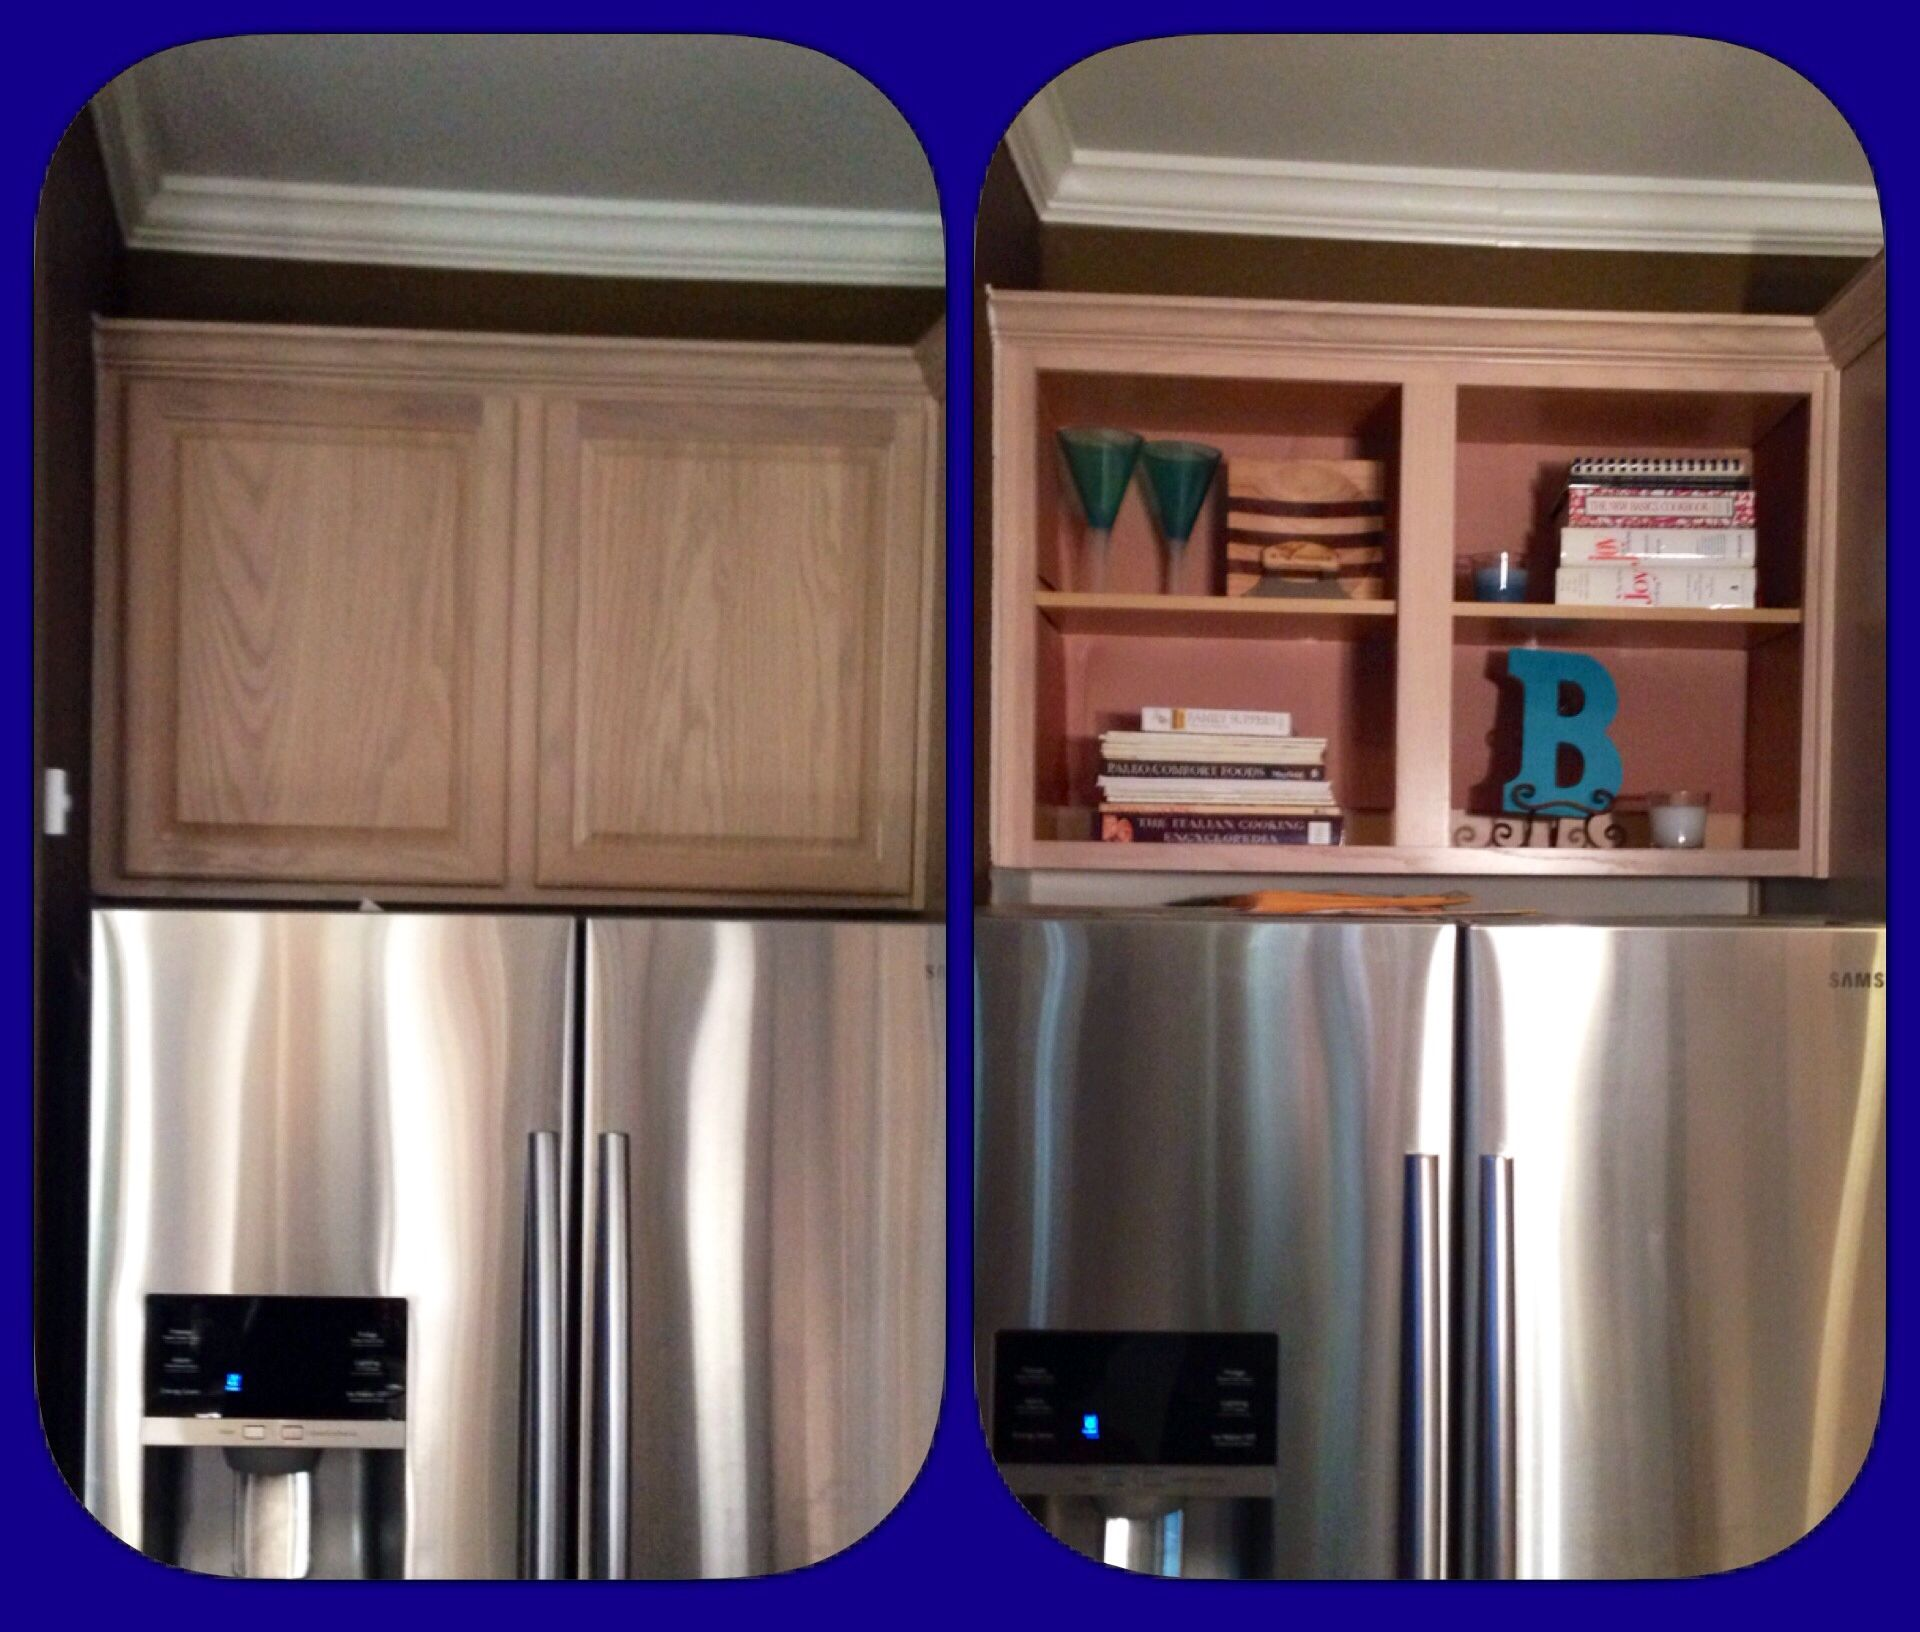 Convert cupboards above refrigerator to bookshelf for ...